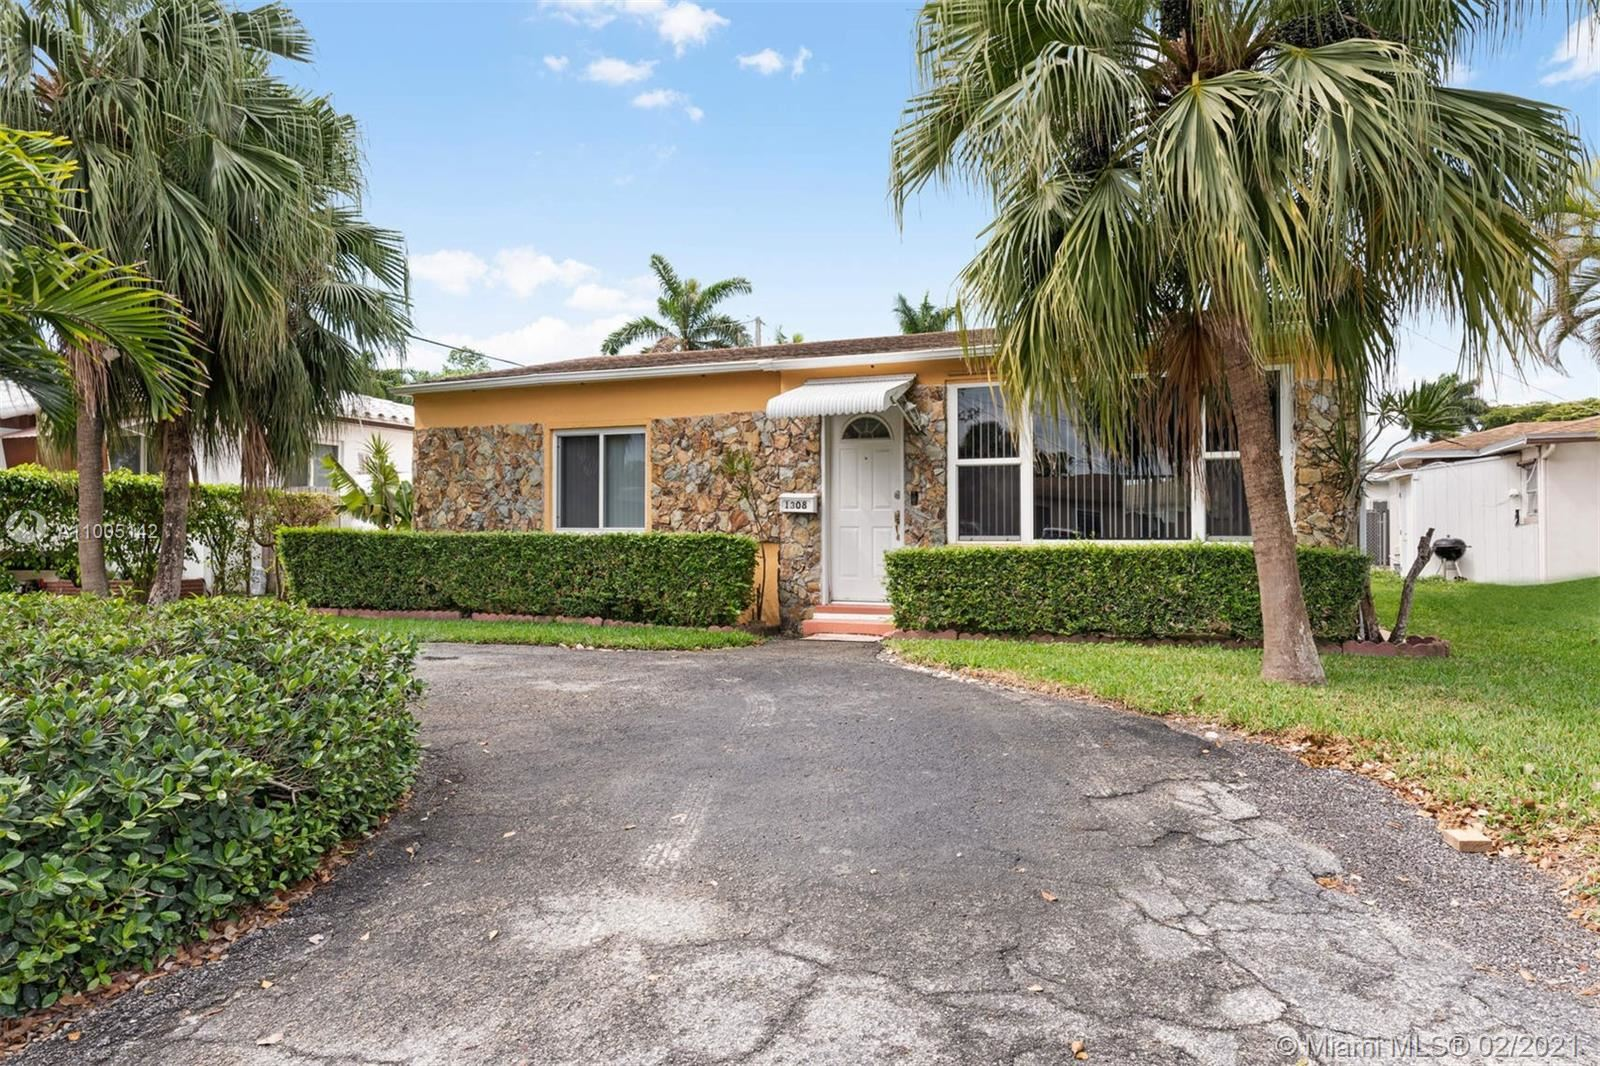 1308 S 19th Ave, Hollywood, FL 33020 - #: A11005142